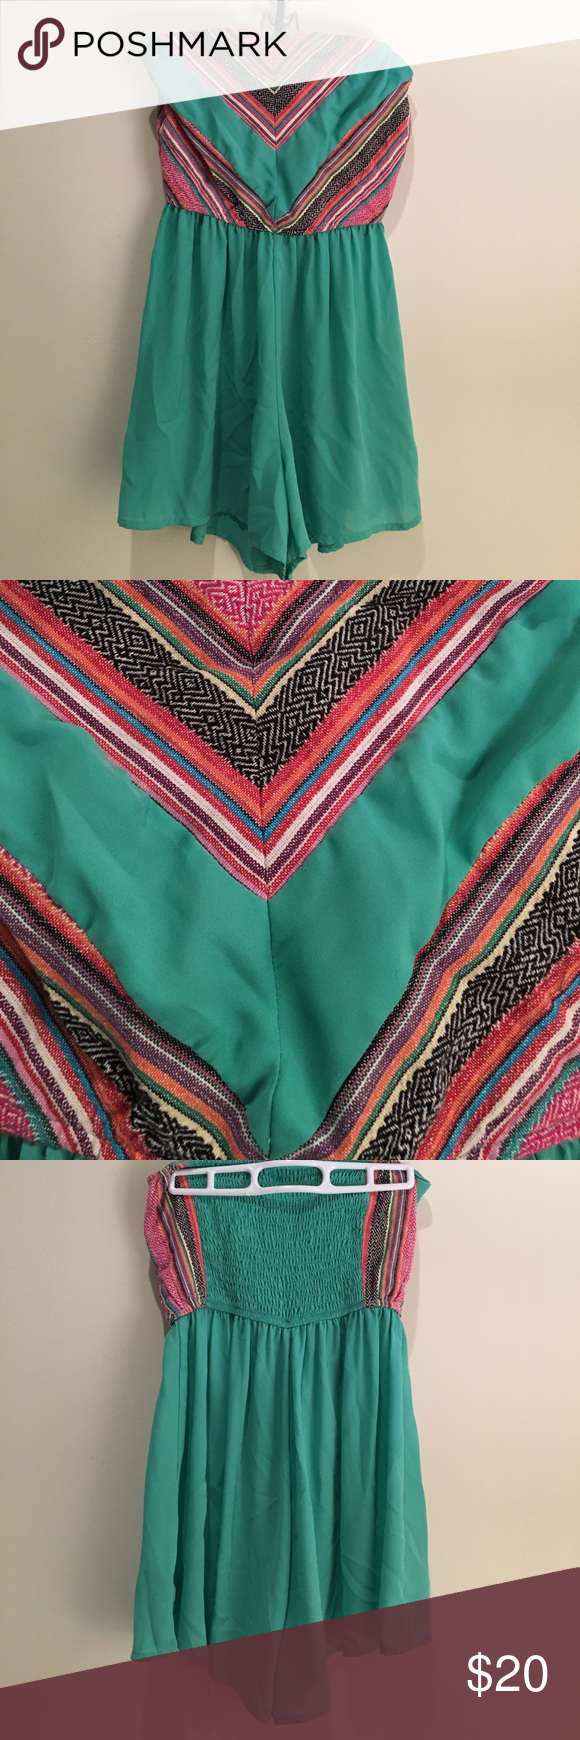 Teal Romper With Aztec Design Romper by the brand West 36th. Purchased at a local boutique. The romper is a teal blue color and features a multicolor Aztec design on the top of the front. The top of the back is elastic for comfortable wear. It is strapless. 100% Polyester. The tag says dry clean only, but I have had no problems machine washing this on the delicate cycle. Dresses